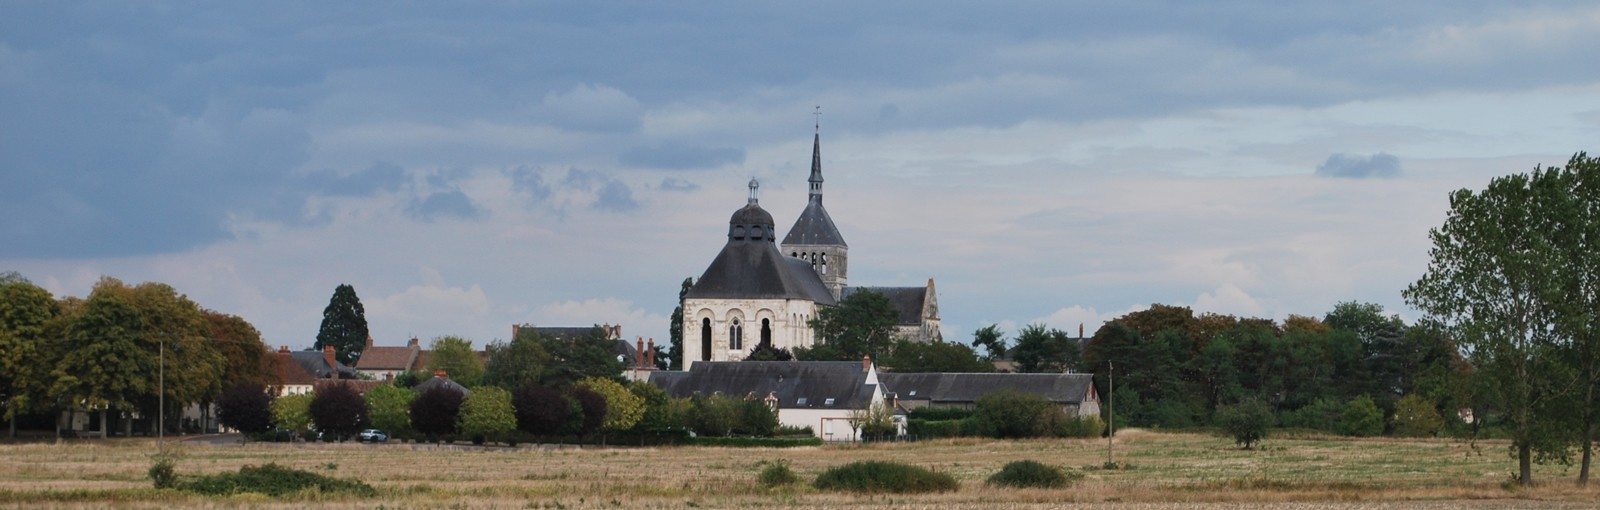 Tours Escapades and delight in Le Loiret - Full days - Day tours from Paris